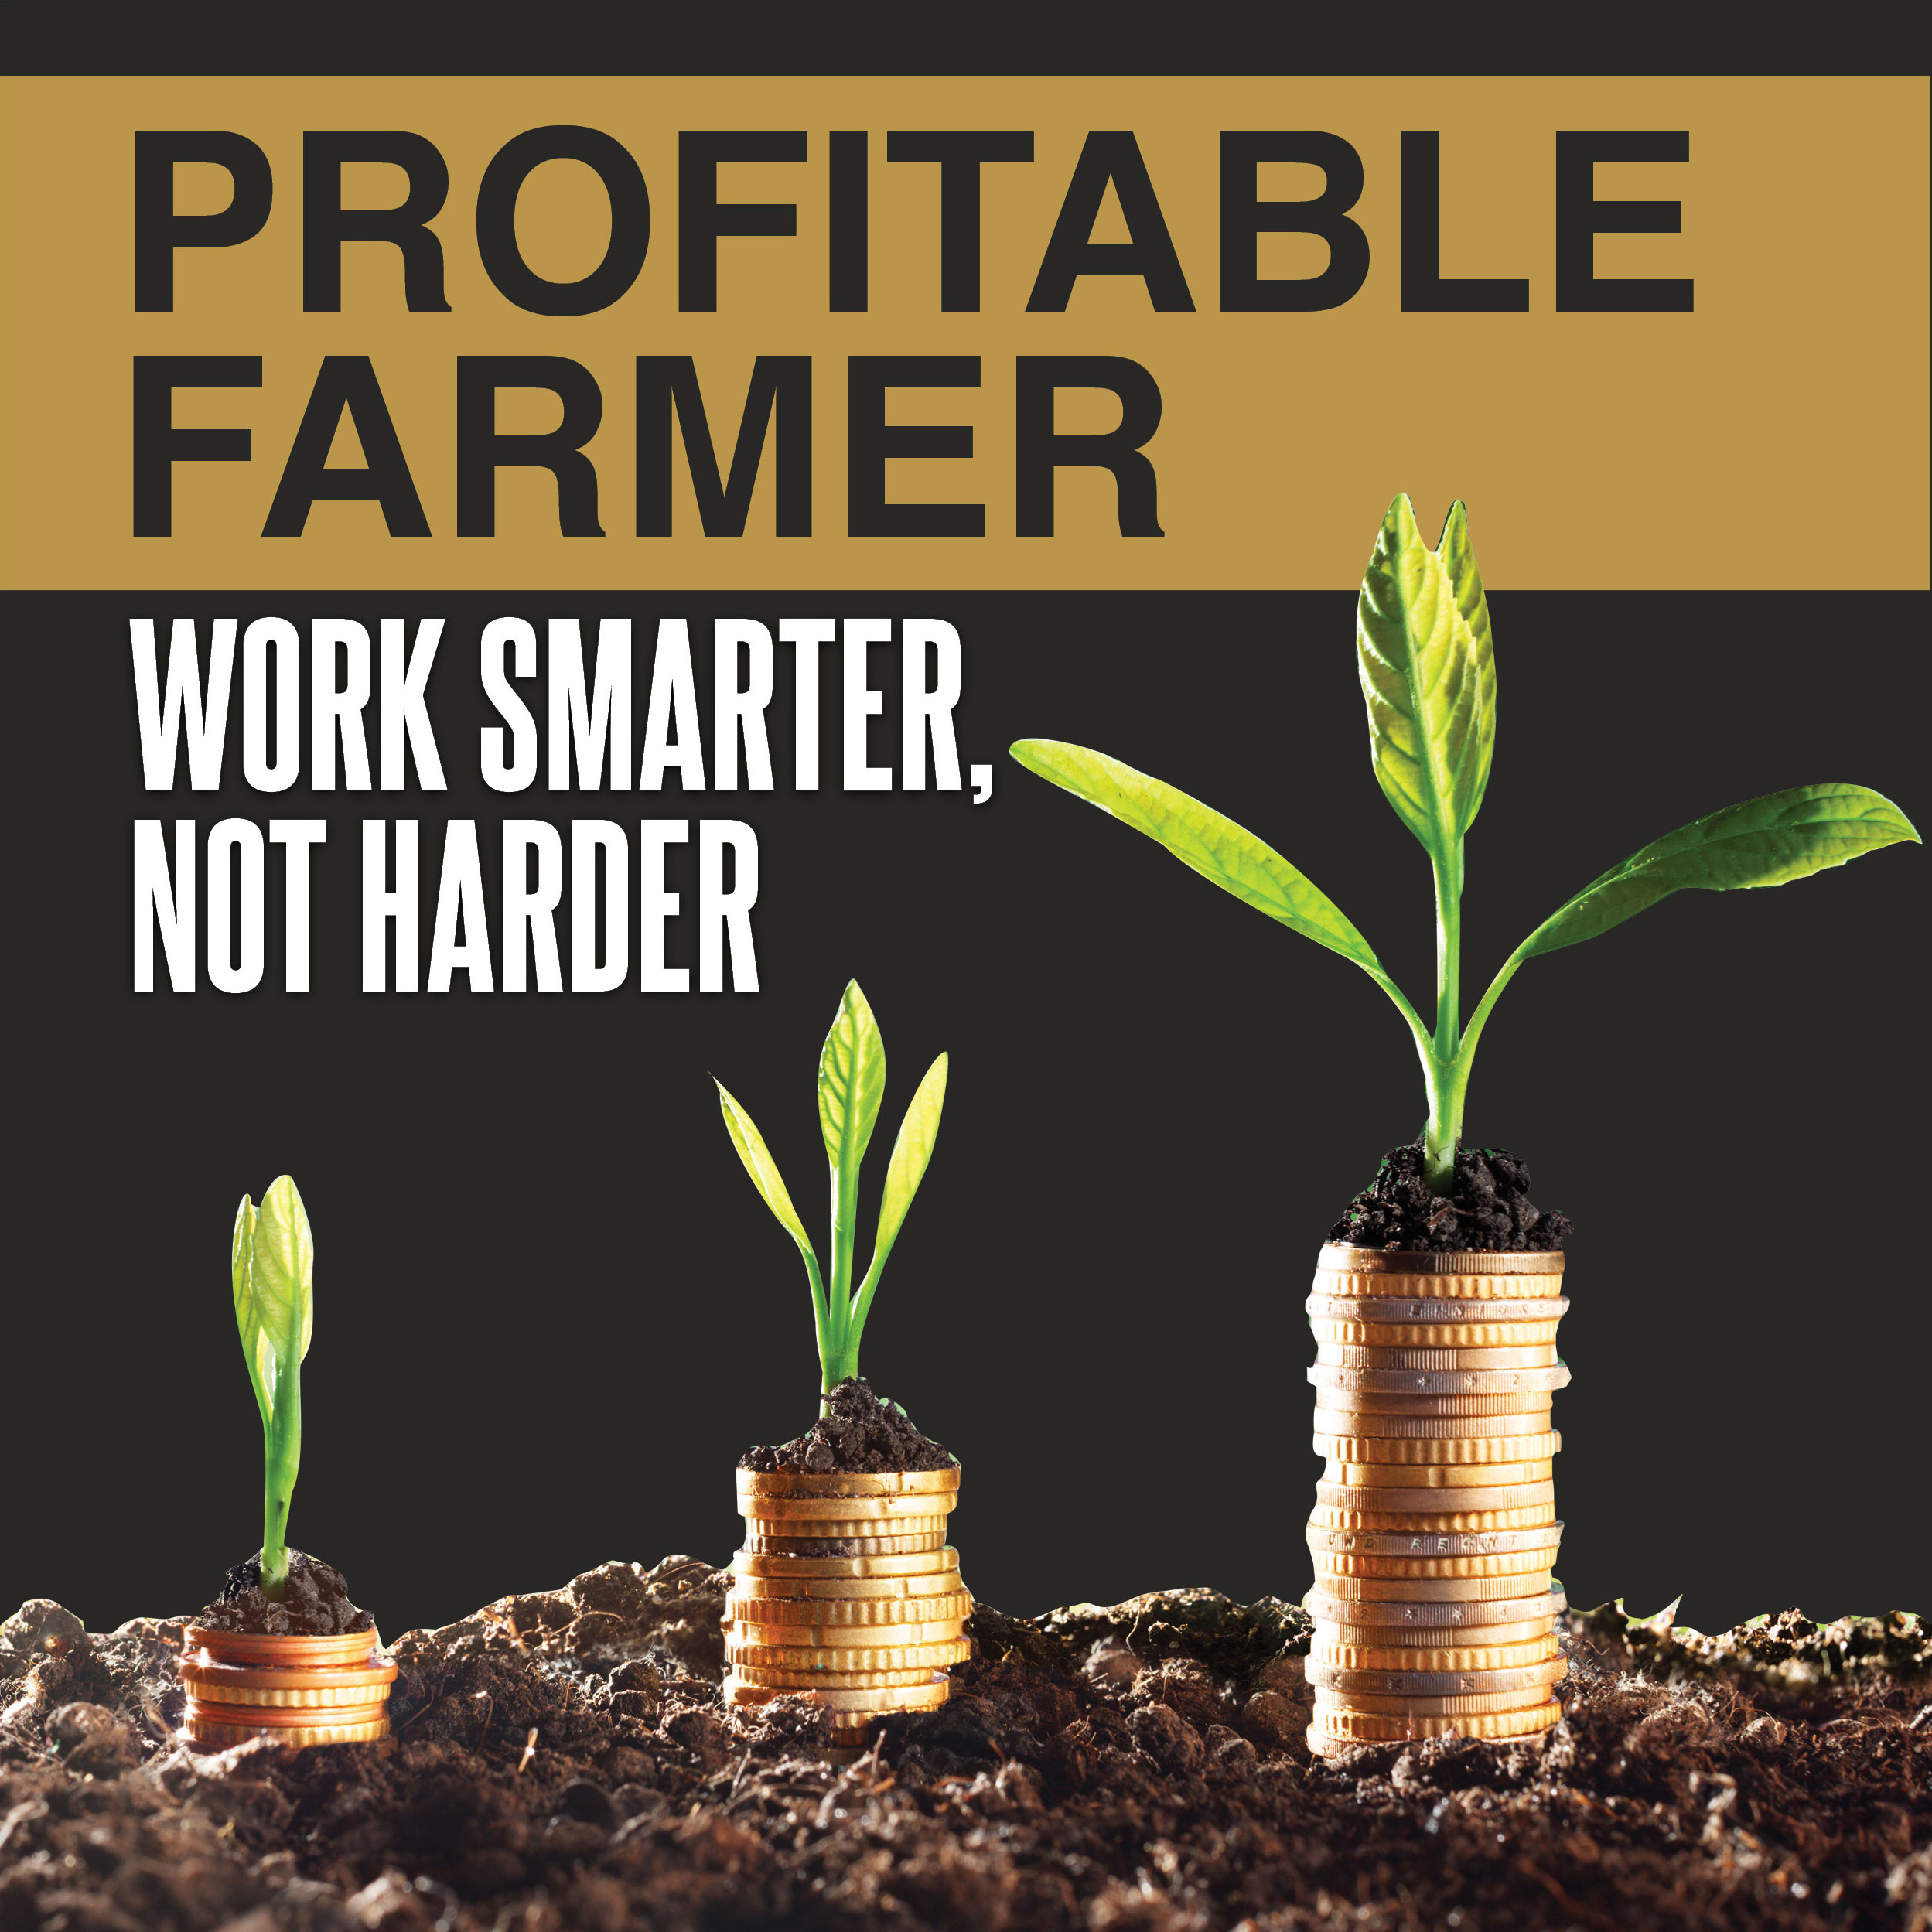 Profitable Farmer